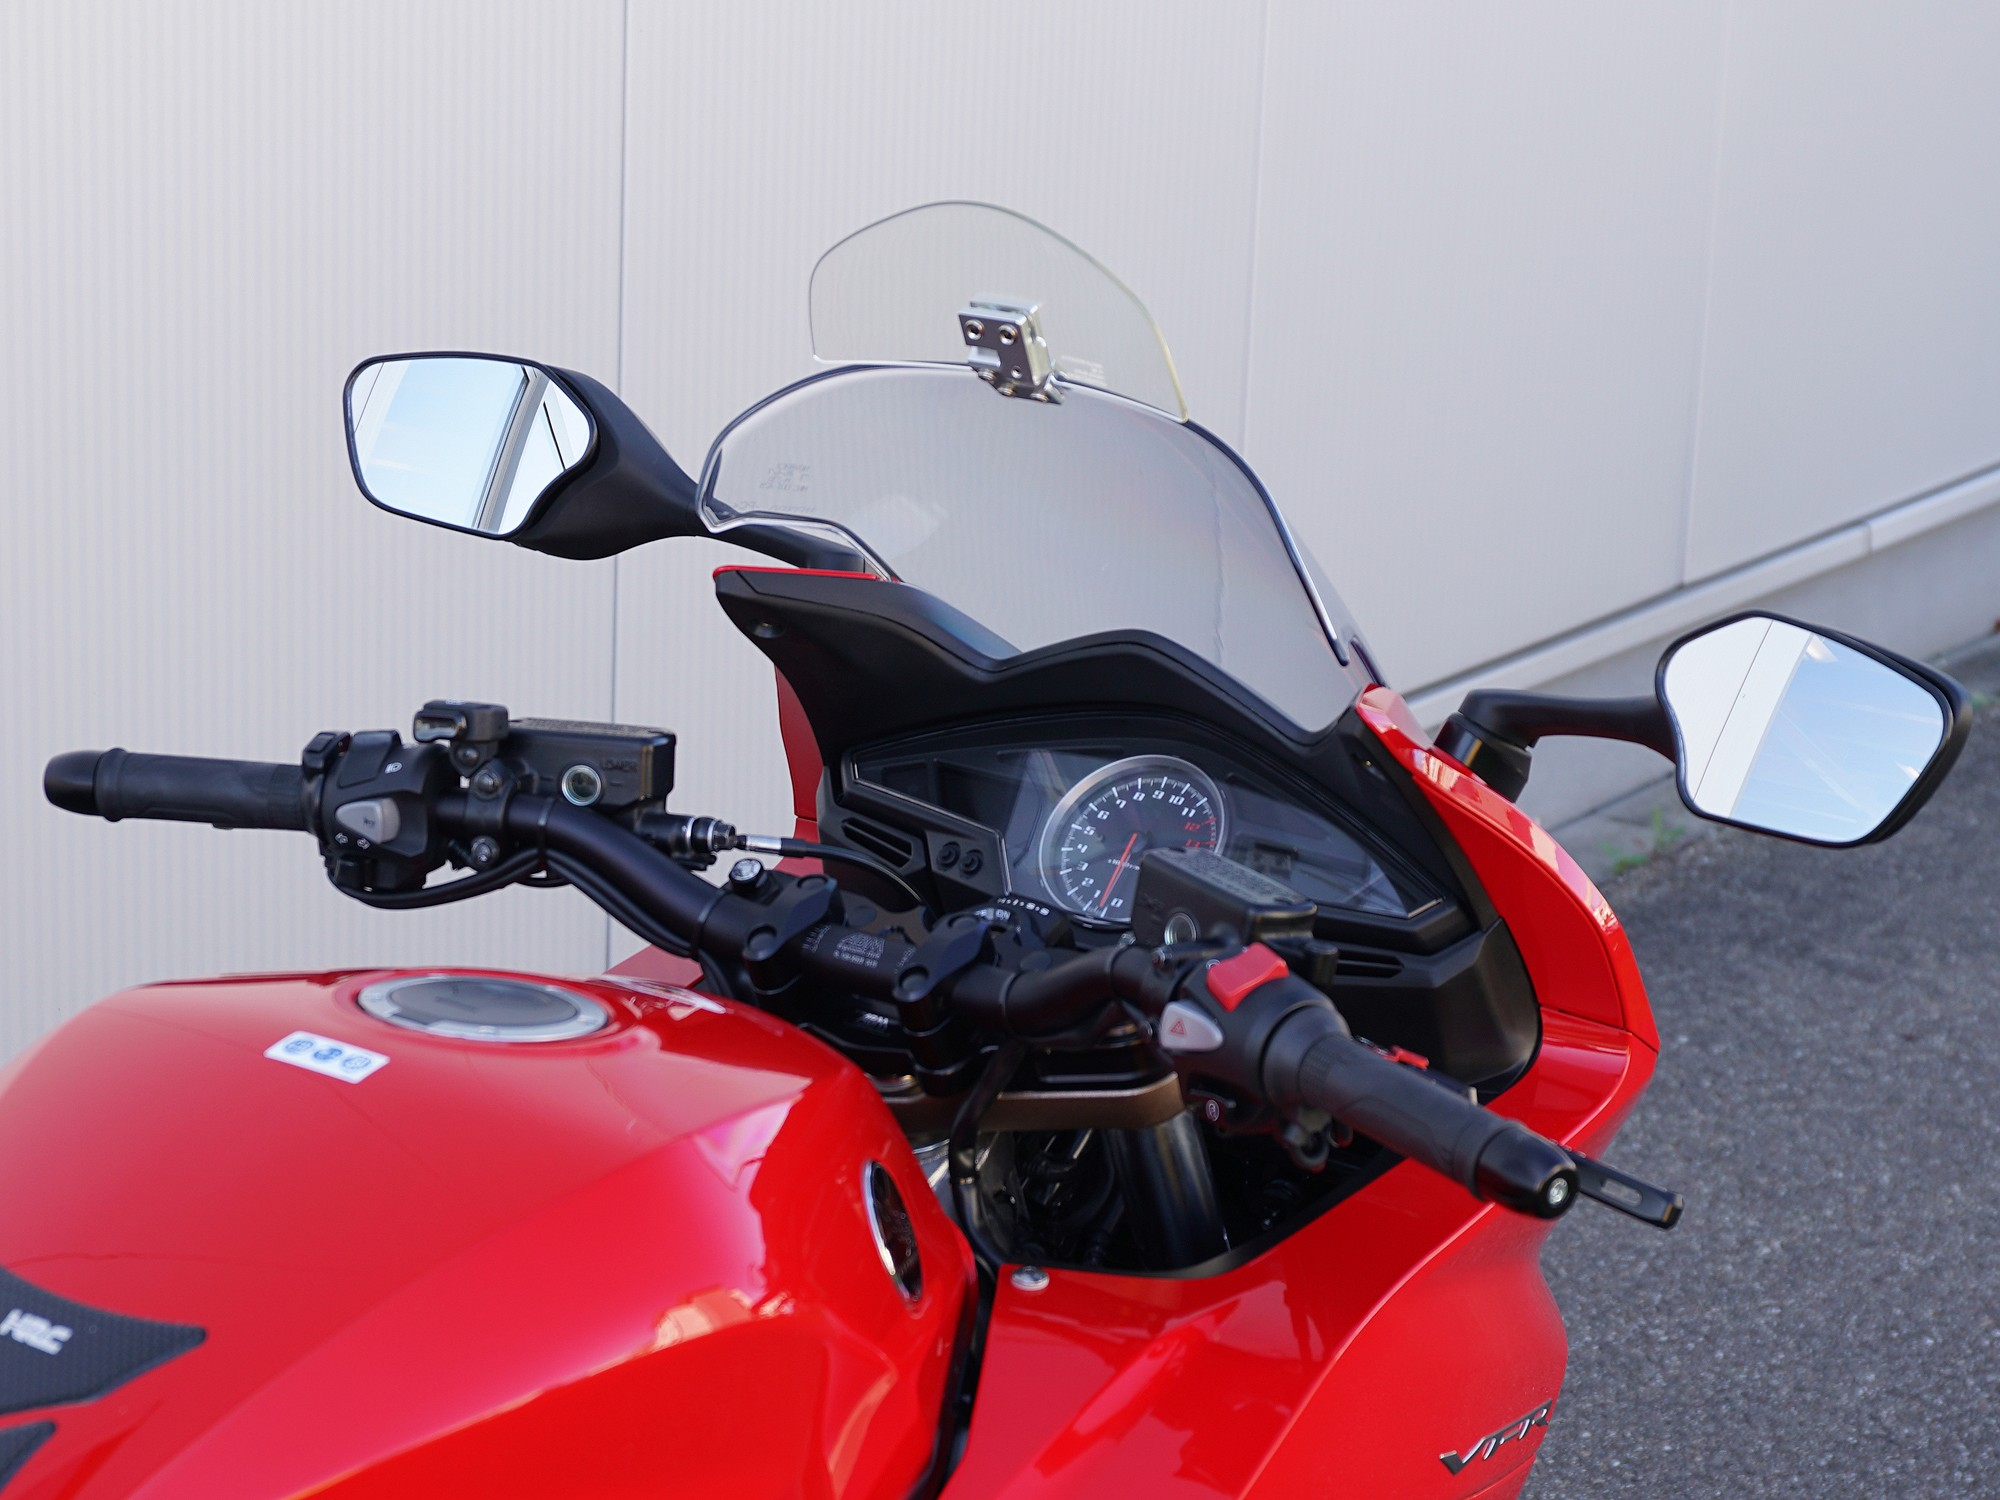 Superbike handlebar conversion kit for Honda VFR 800 F | by German ABM | ab-m.de/en